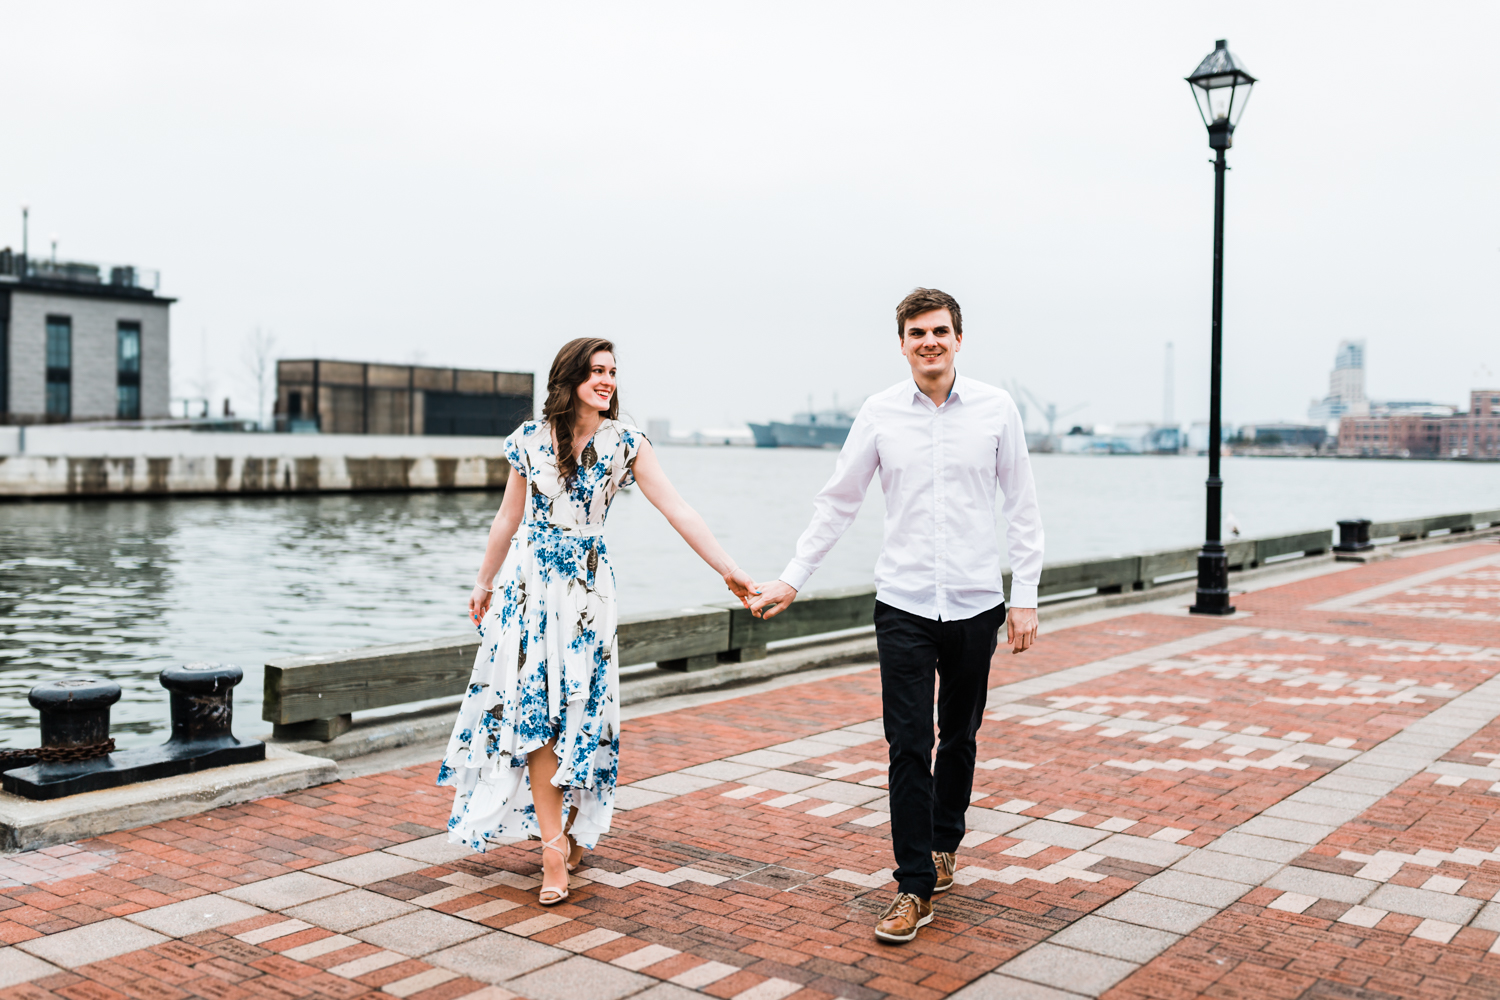 Couple walking and holding hands on promenade at Fells Point - Baltimore, Maryland engagement and wedding photographer